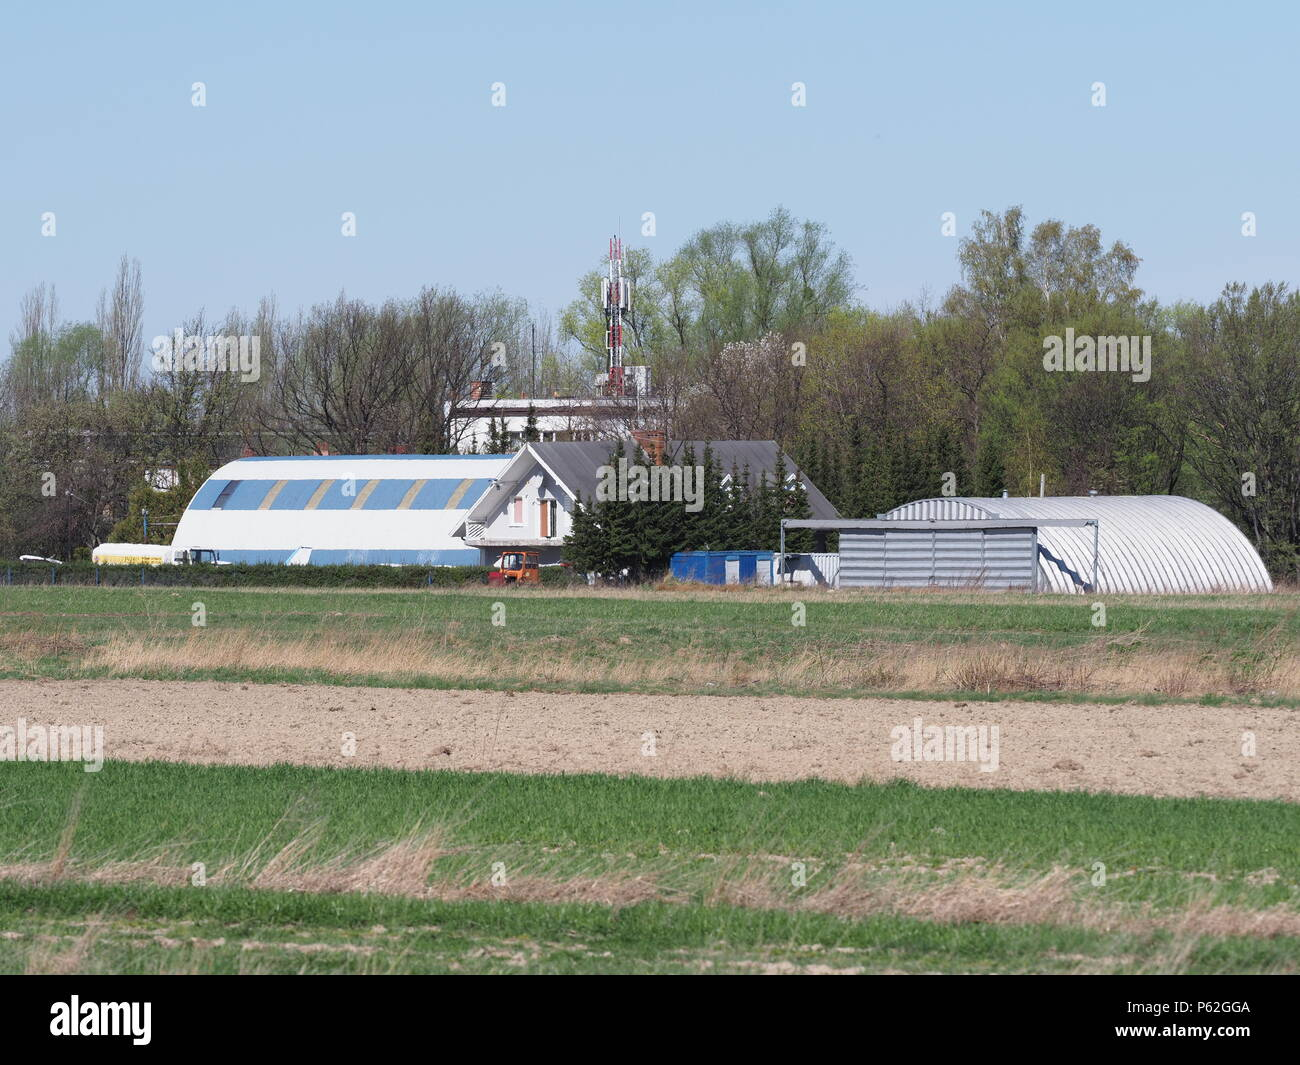 Buildings of local sport airport on grassy field landscape in european Bielsko-Biala city at Poland - Stock Image